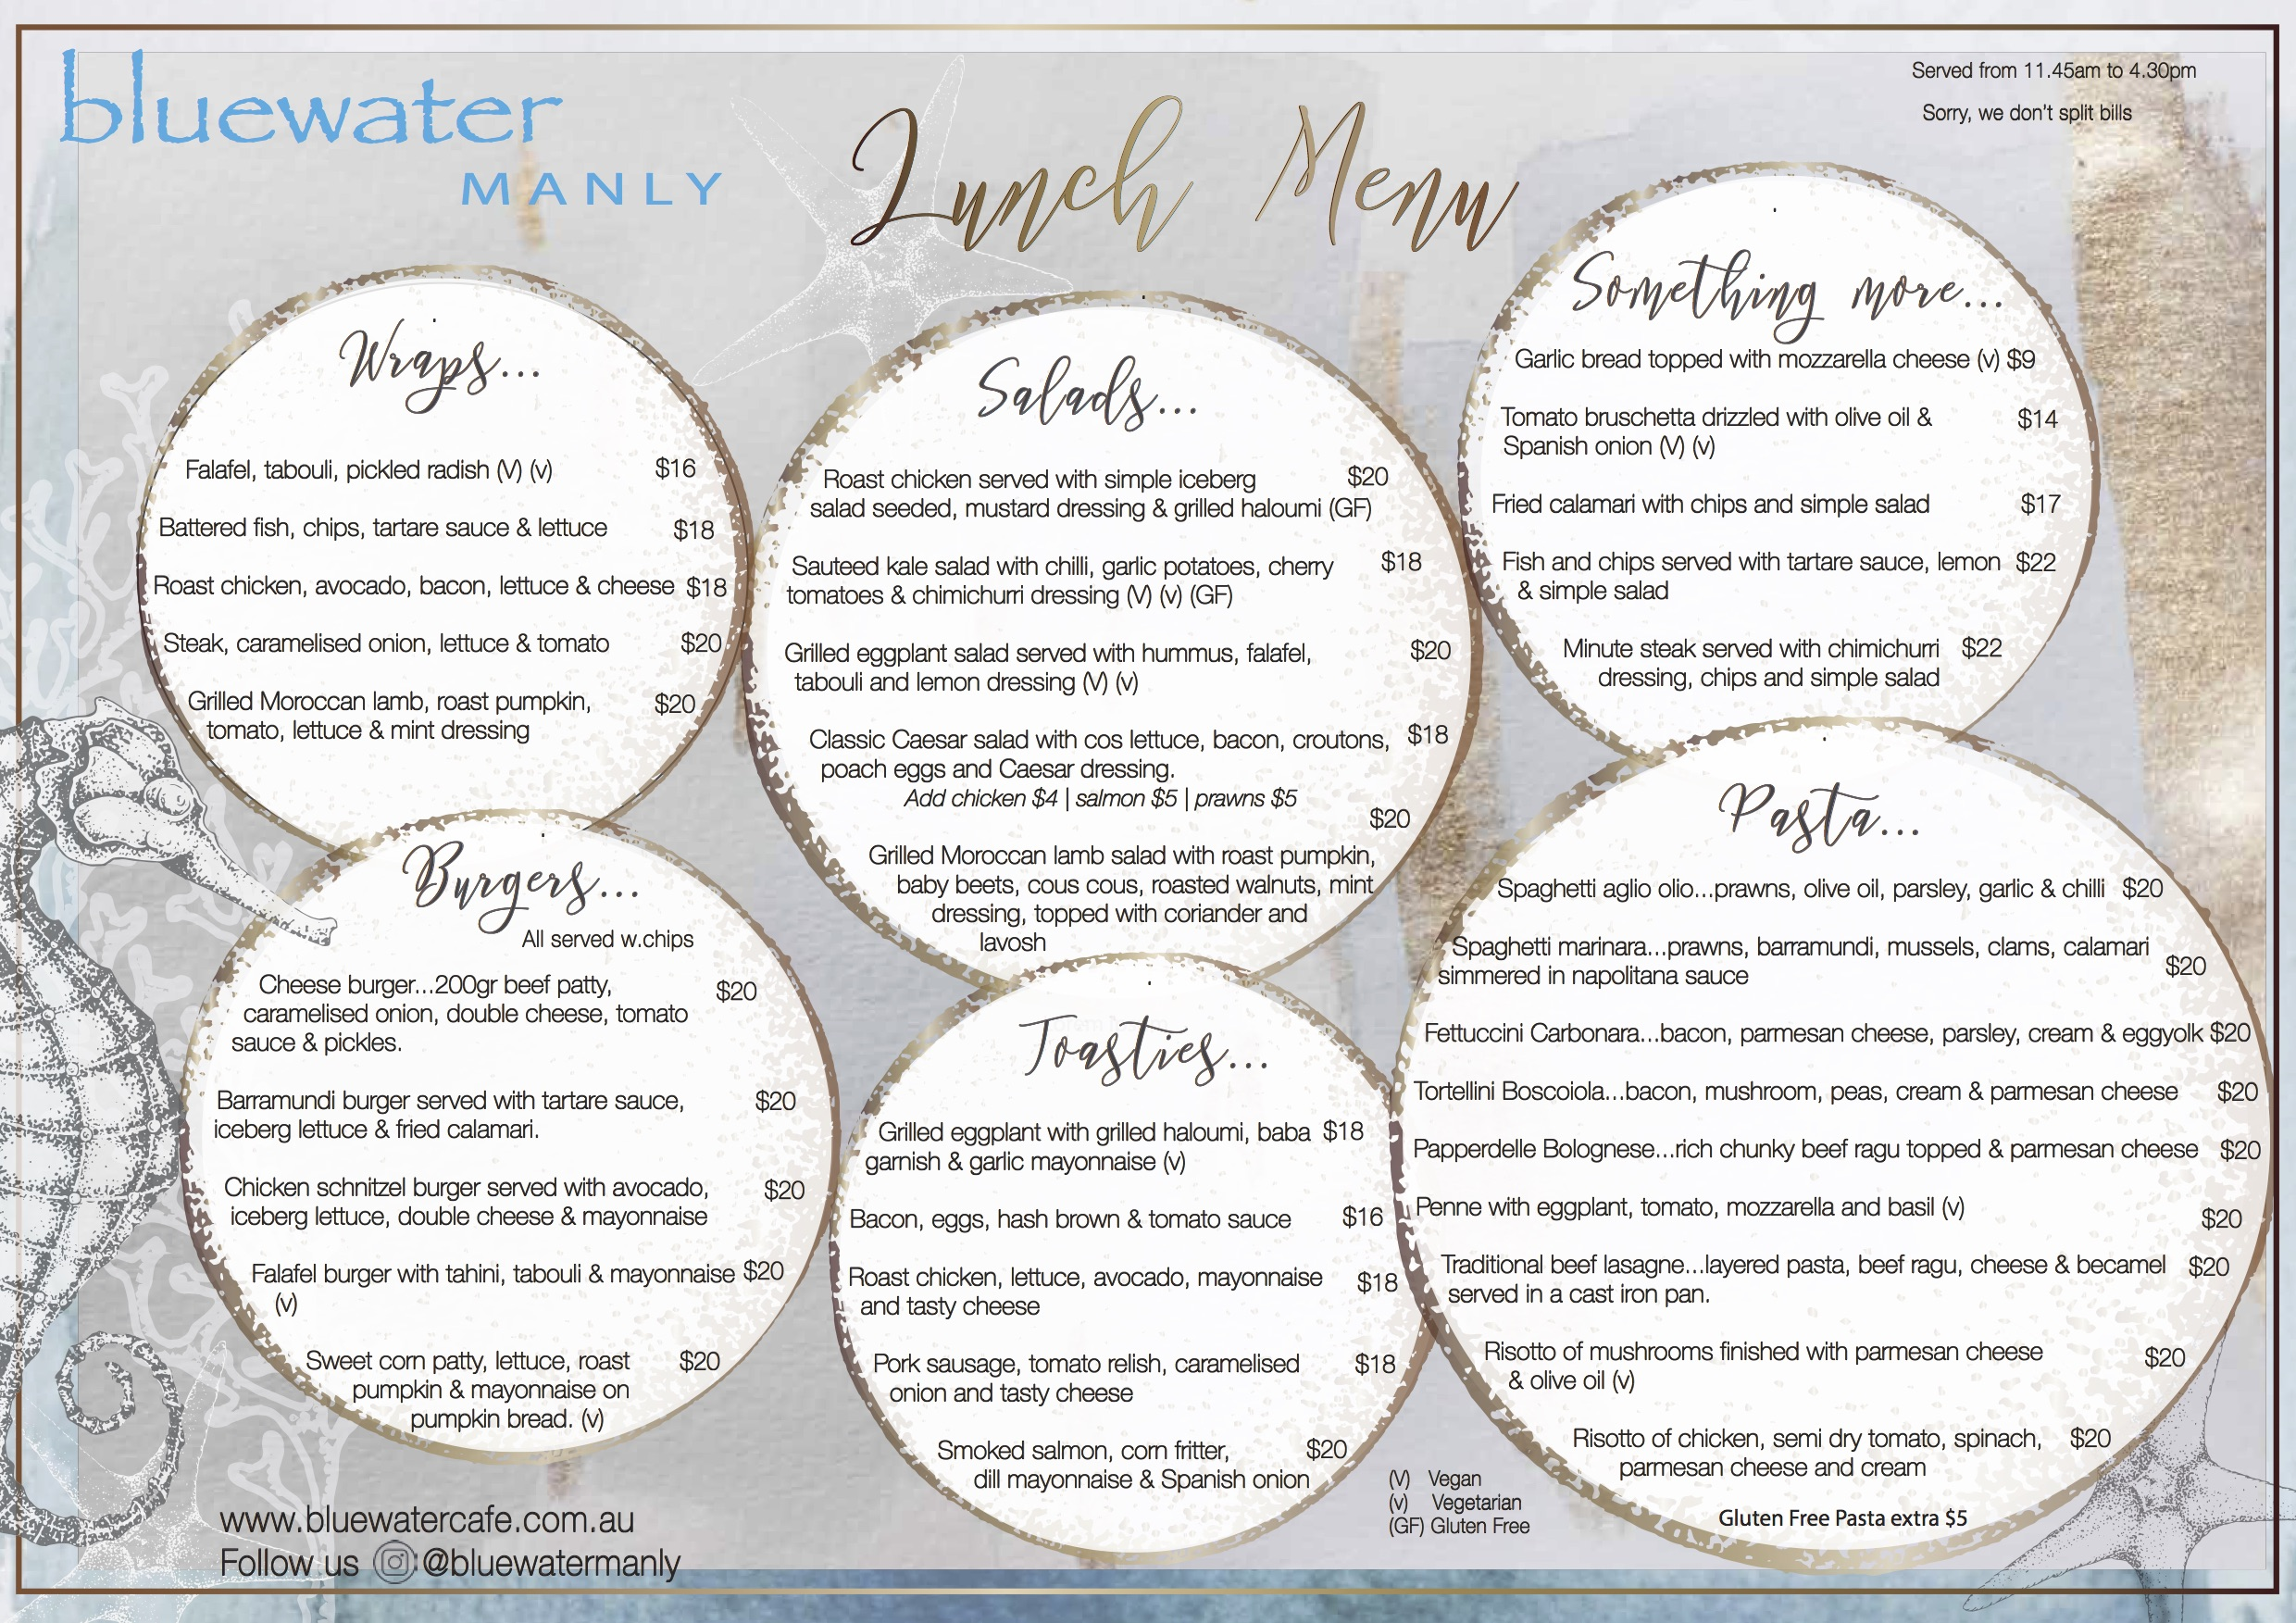 Bluewater Cafe Manly Lunch Menu